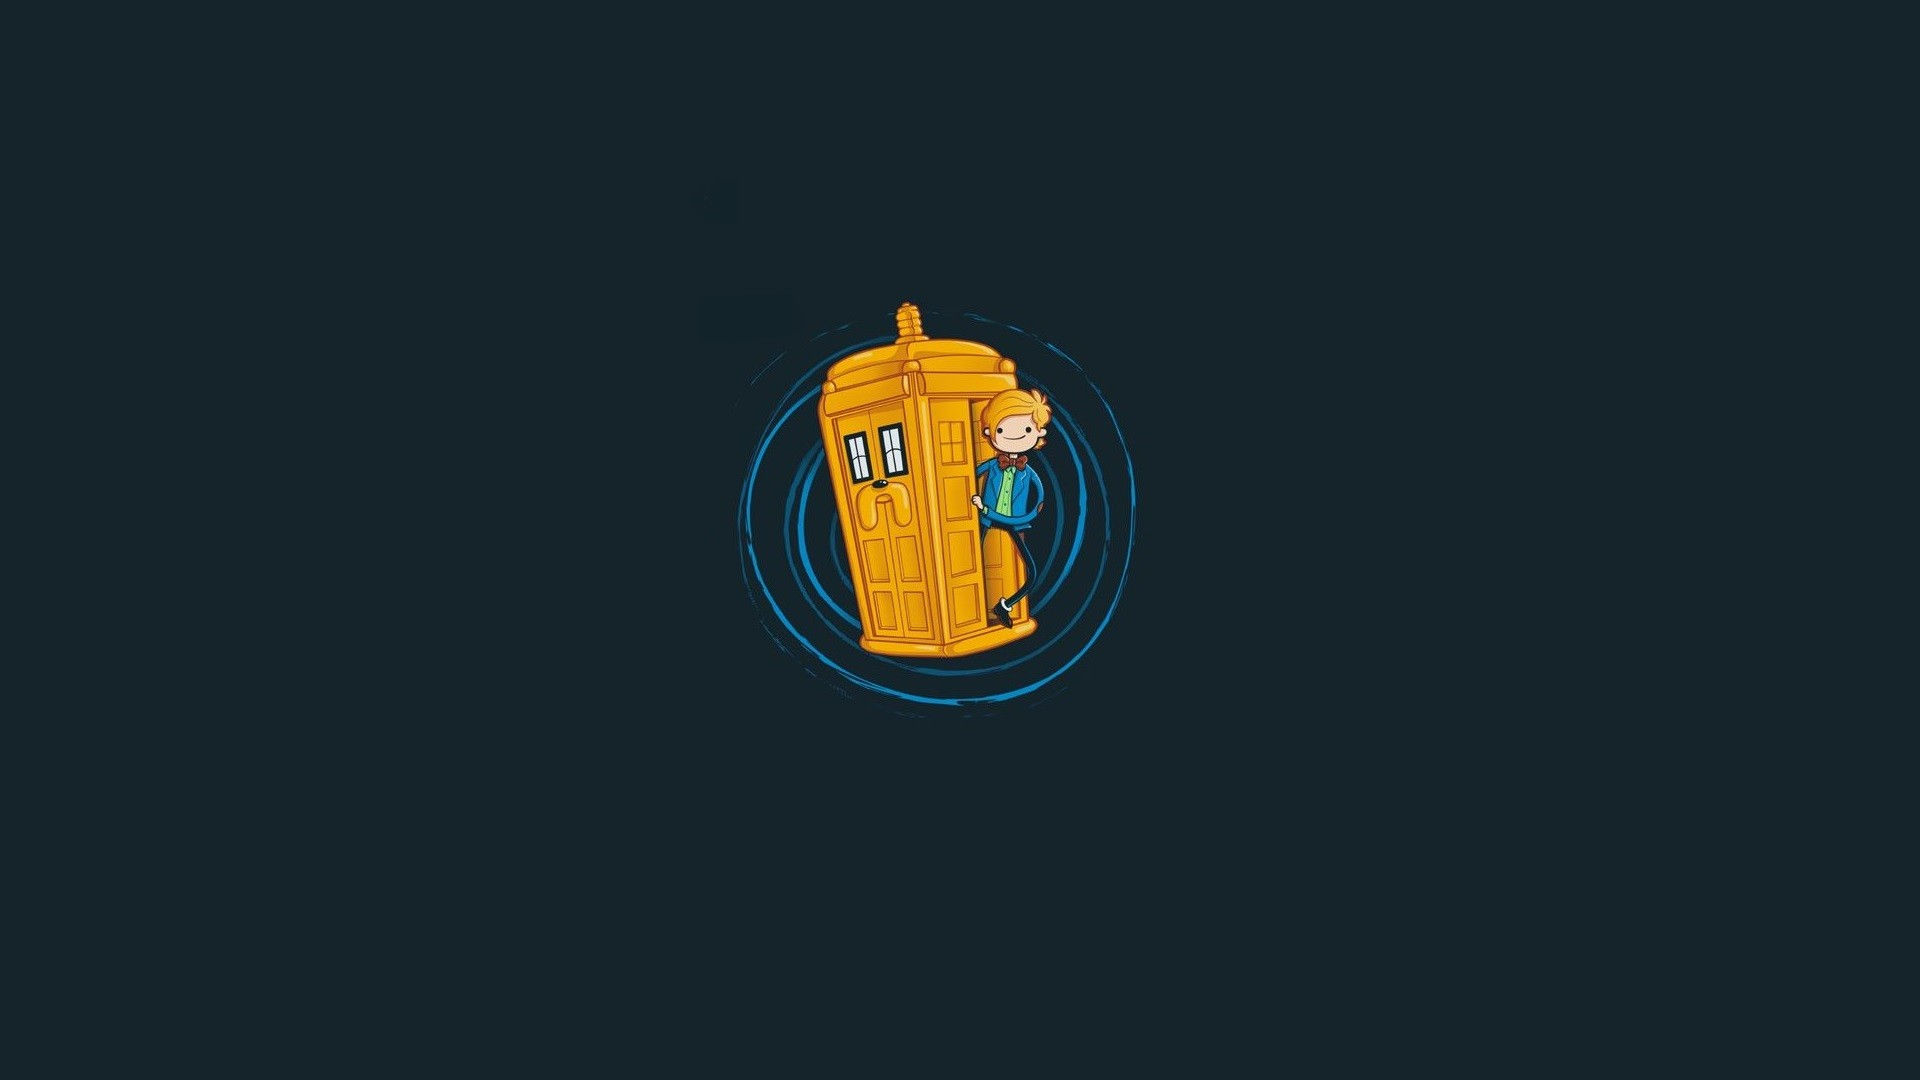 Doctor who wallpapers HD A8 - Doctor who backgrounds | doctor who tardis wallpapers | Dr Who | Doctor who desktop wallpapers | doctor who phone wallpapers.